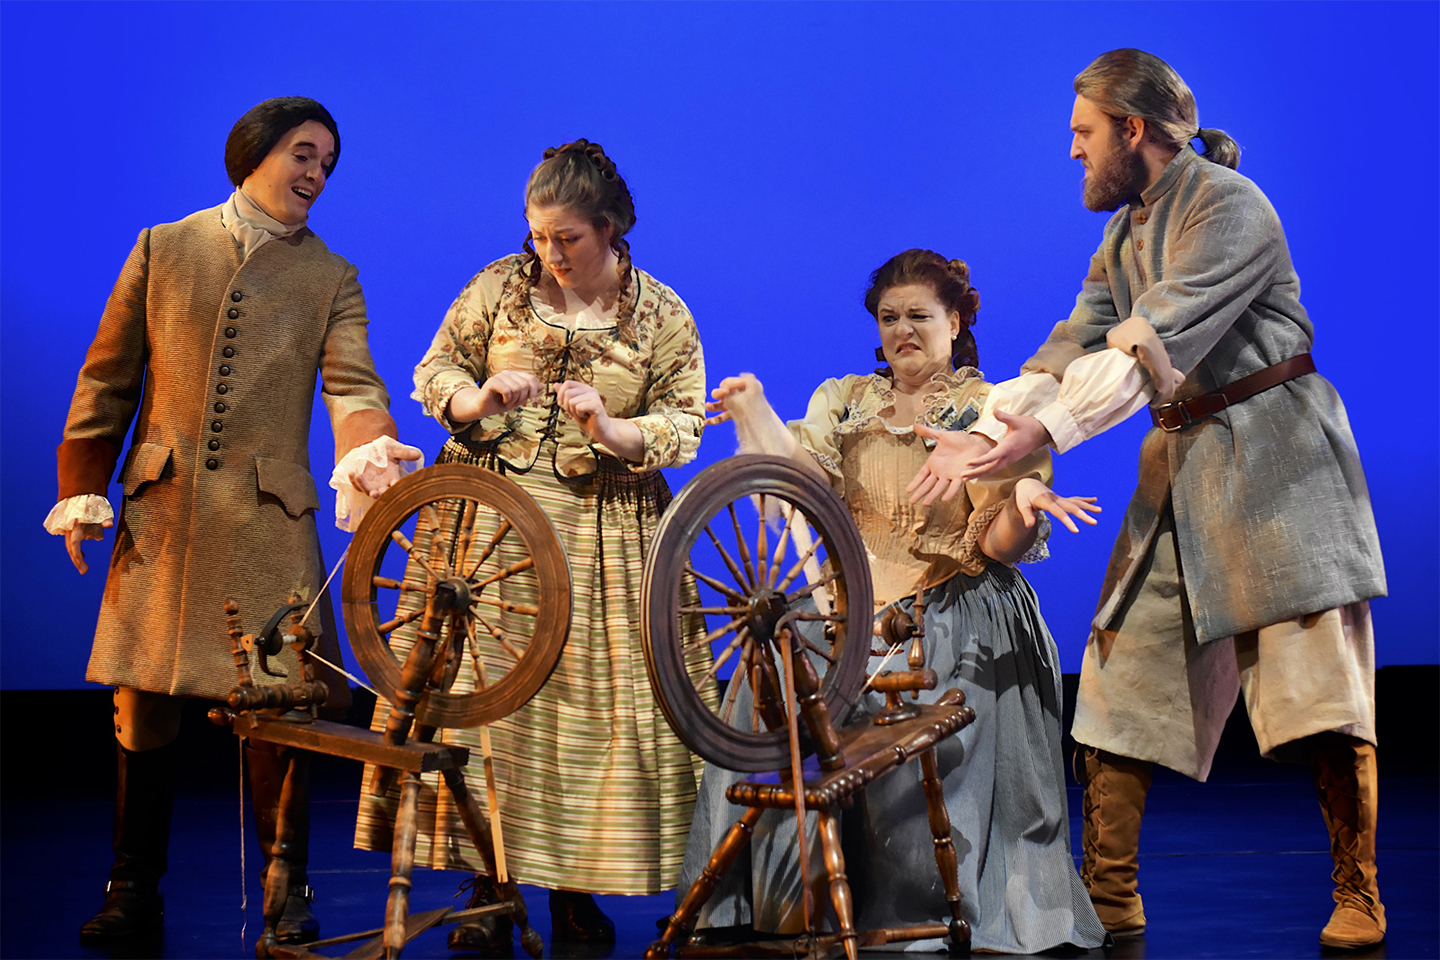 'Martha' brings romance, comedy and opera to Oakland University stage